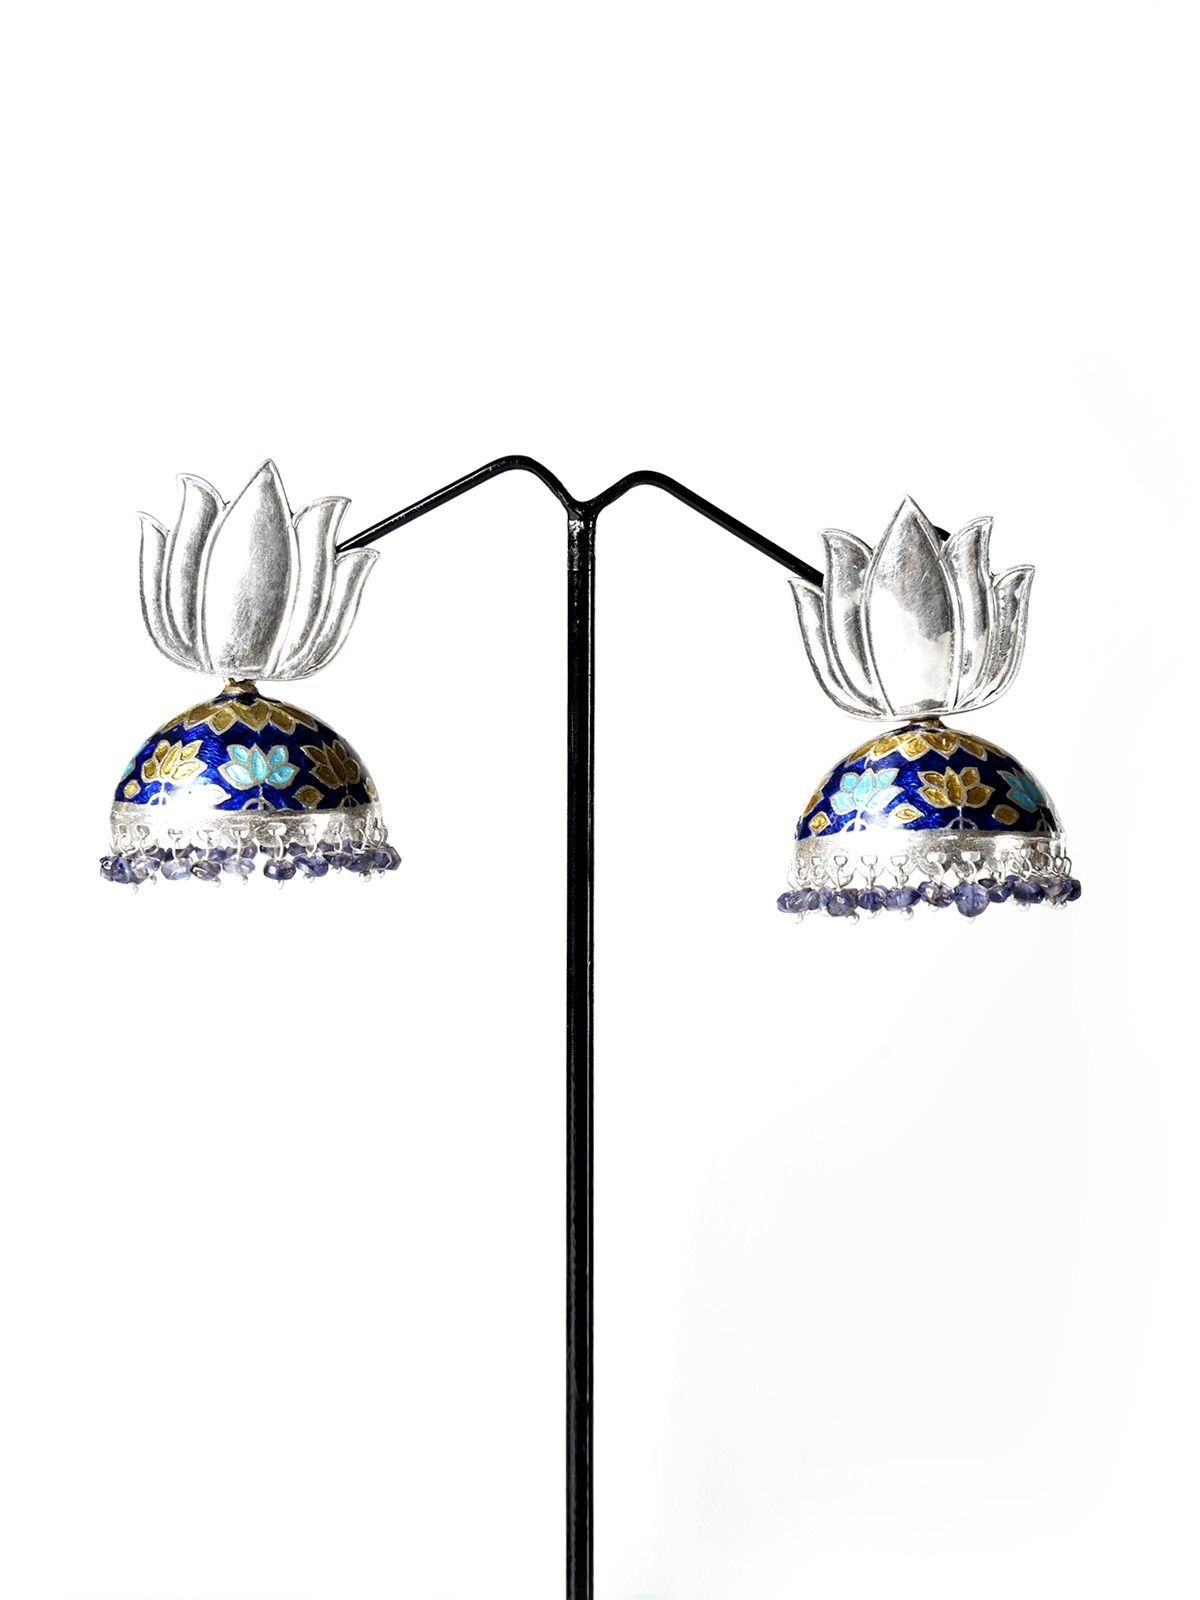 Blooming lotus designs women s - Lotus Designs On The Jhumkas These Ornate Earrings Give A Perfect Finishing Touch To Your